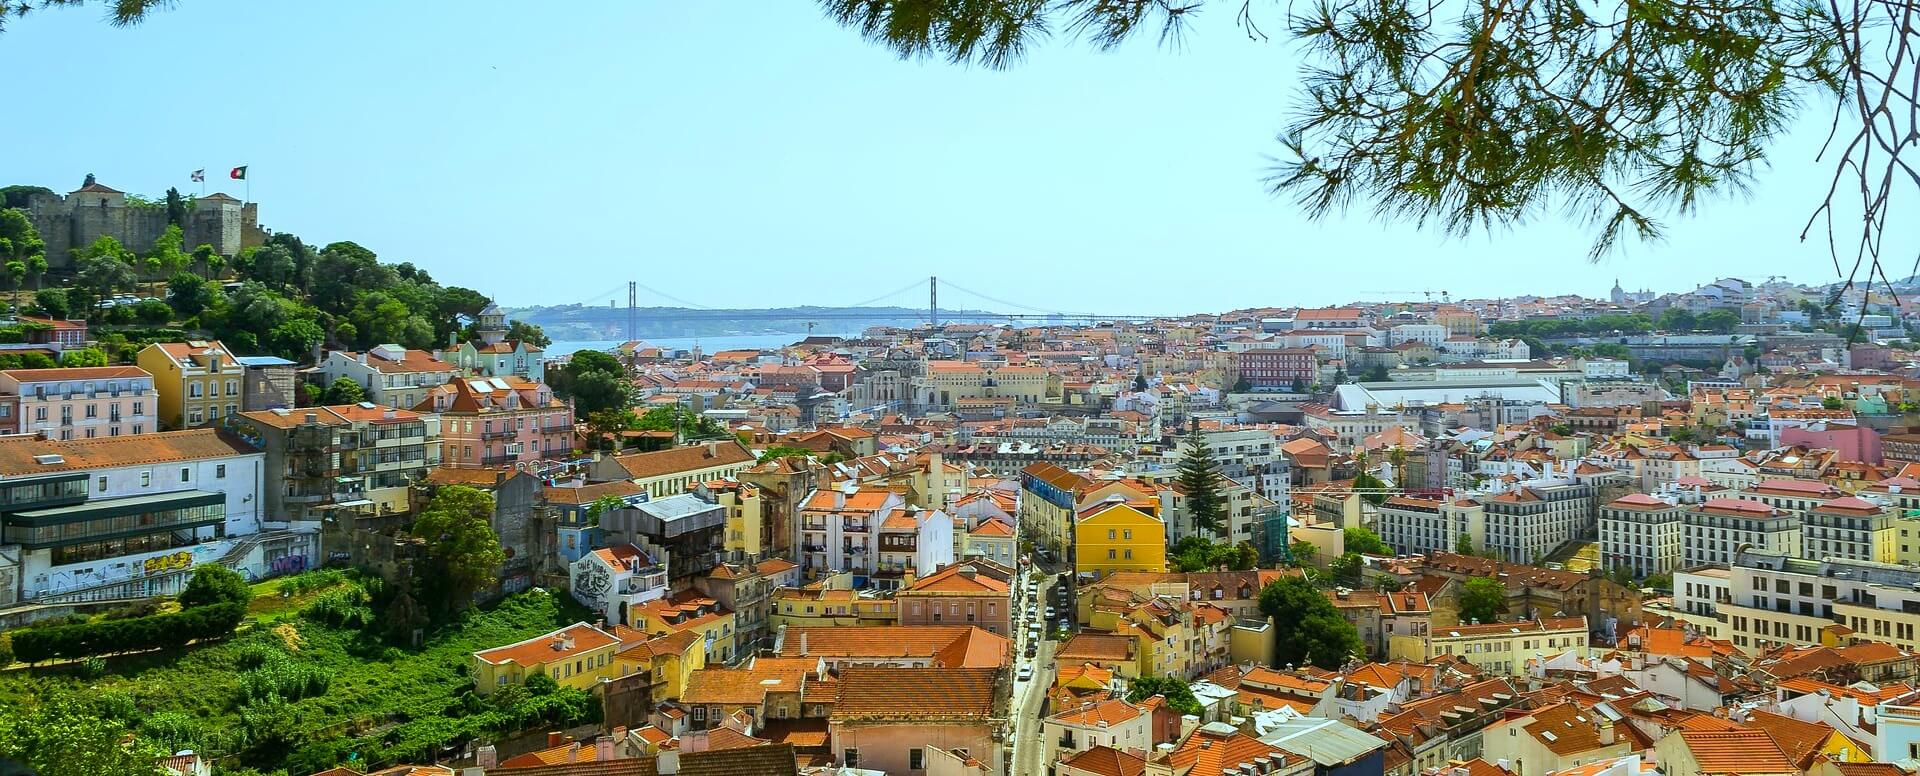 10 things to do in Lisbon - Lisbon